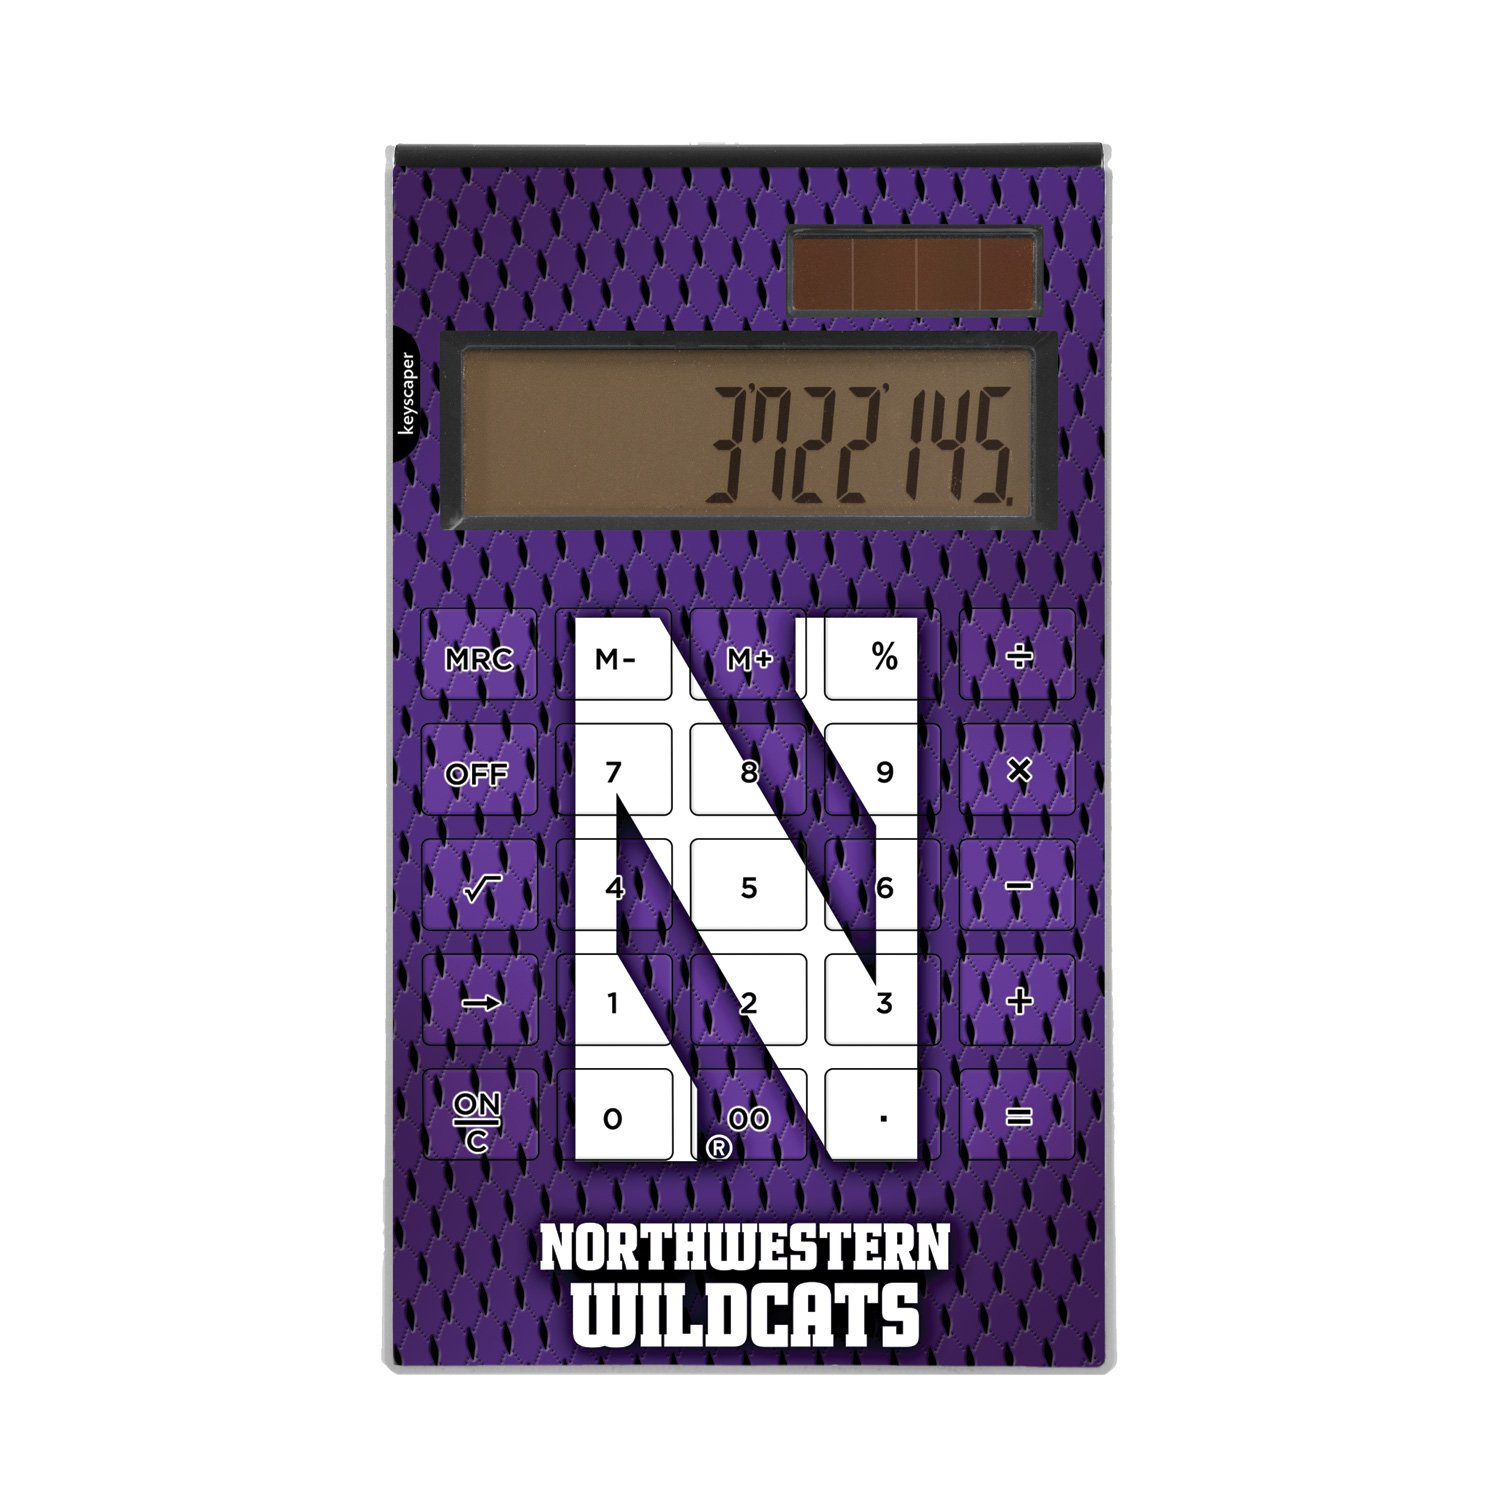 Northwestern Wildcats Desktop Calculator officially licensed by Northwestern University & Kellogg Full Size Large Button Solar by keyscaper® by Keyscaper